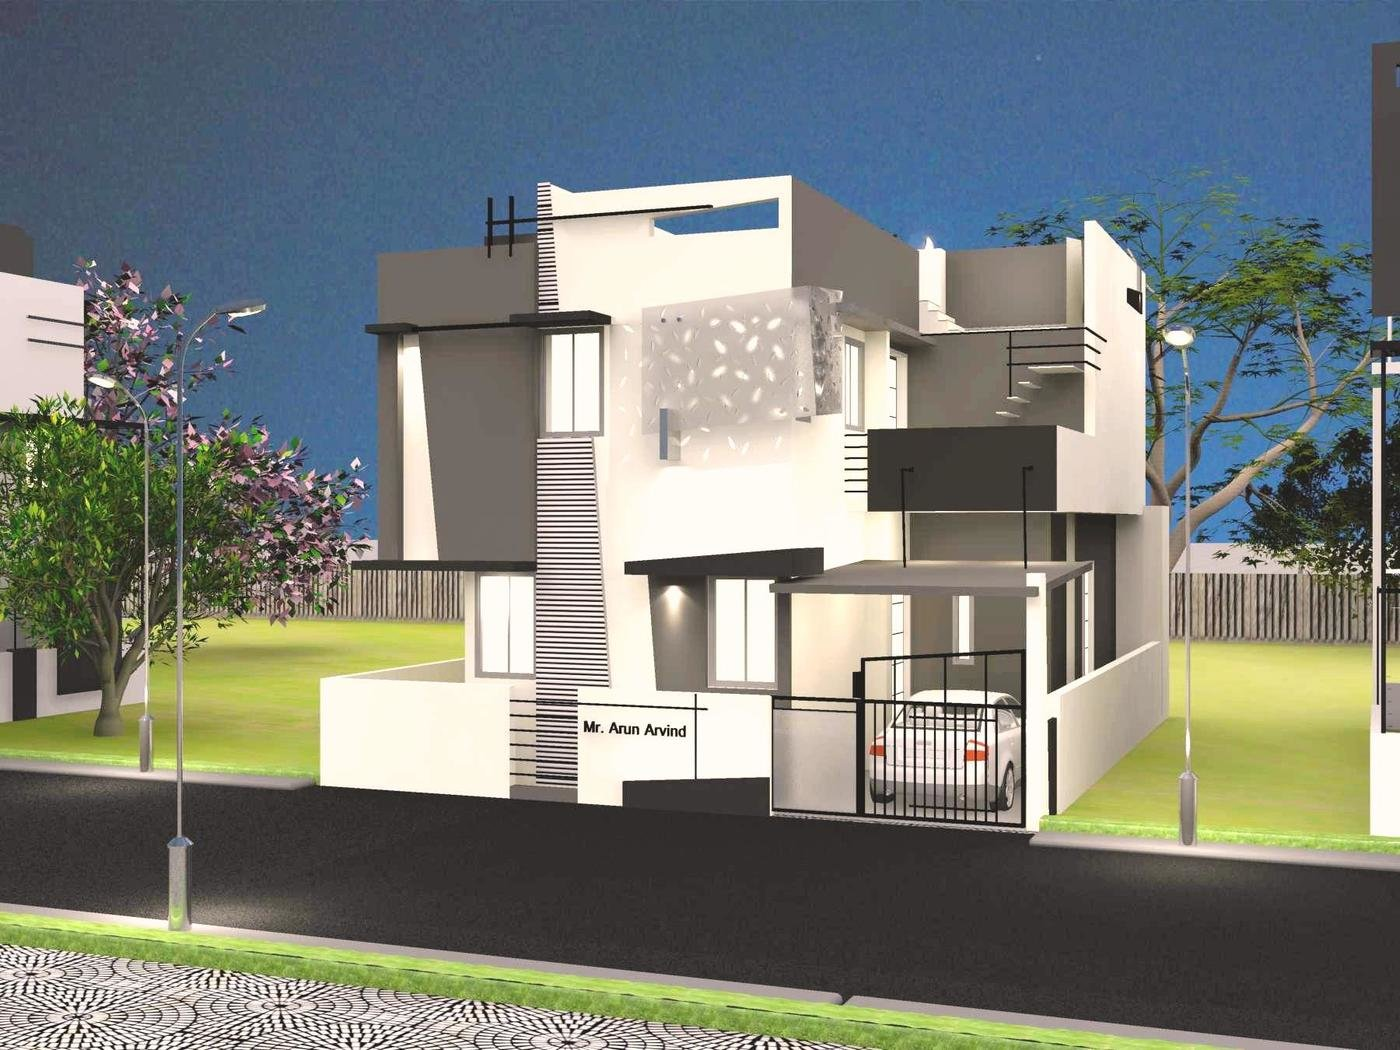 Contemporary Architecture - House Designs & Commercial Construction ...